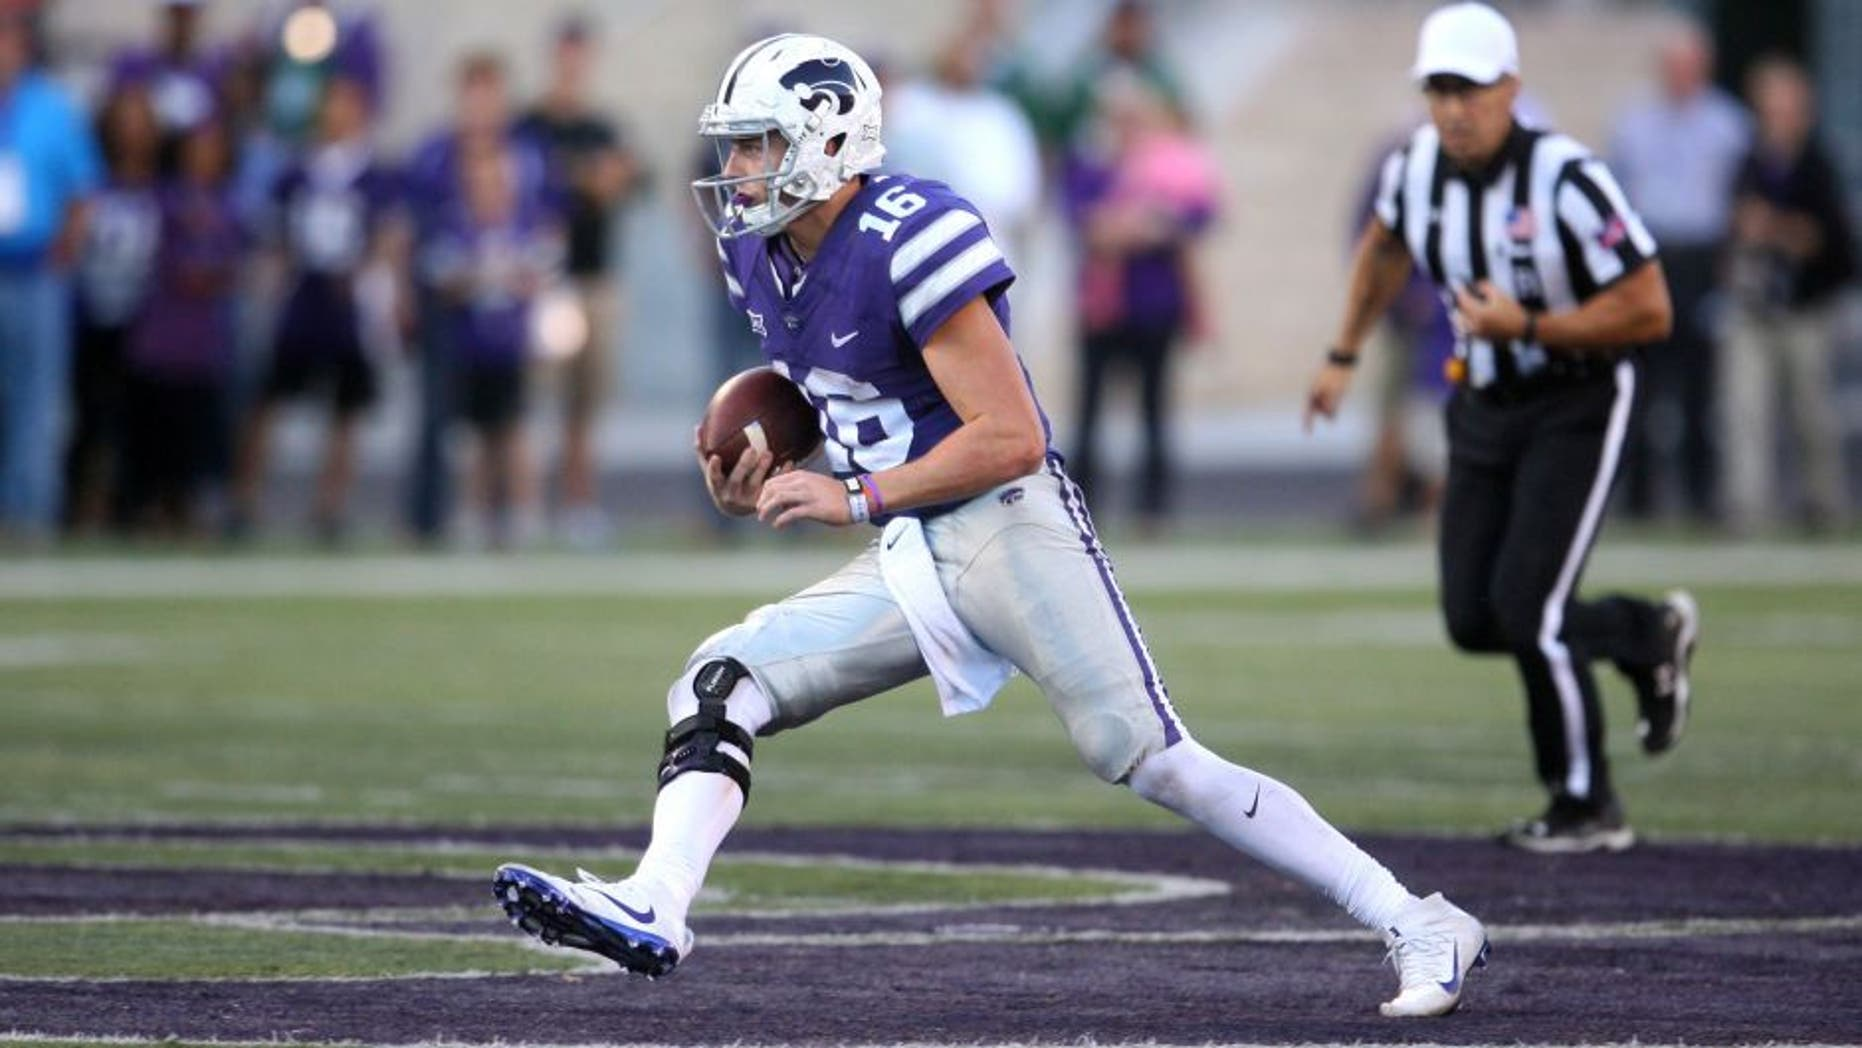 Nov 5, 2016; Manhattan, KS, USA; Kansas State Wildcats quarterback Jesse Ertz (16) finds room to run against the Oklahoma State Cowboys at Bill Snyder Family Football Stadium. The Cowboys won 43-37. Mandatory Credit: Scott Sewell-USA TODAY Sports